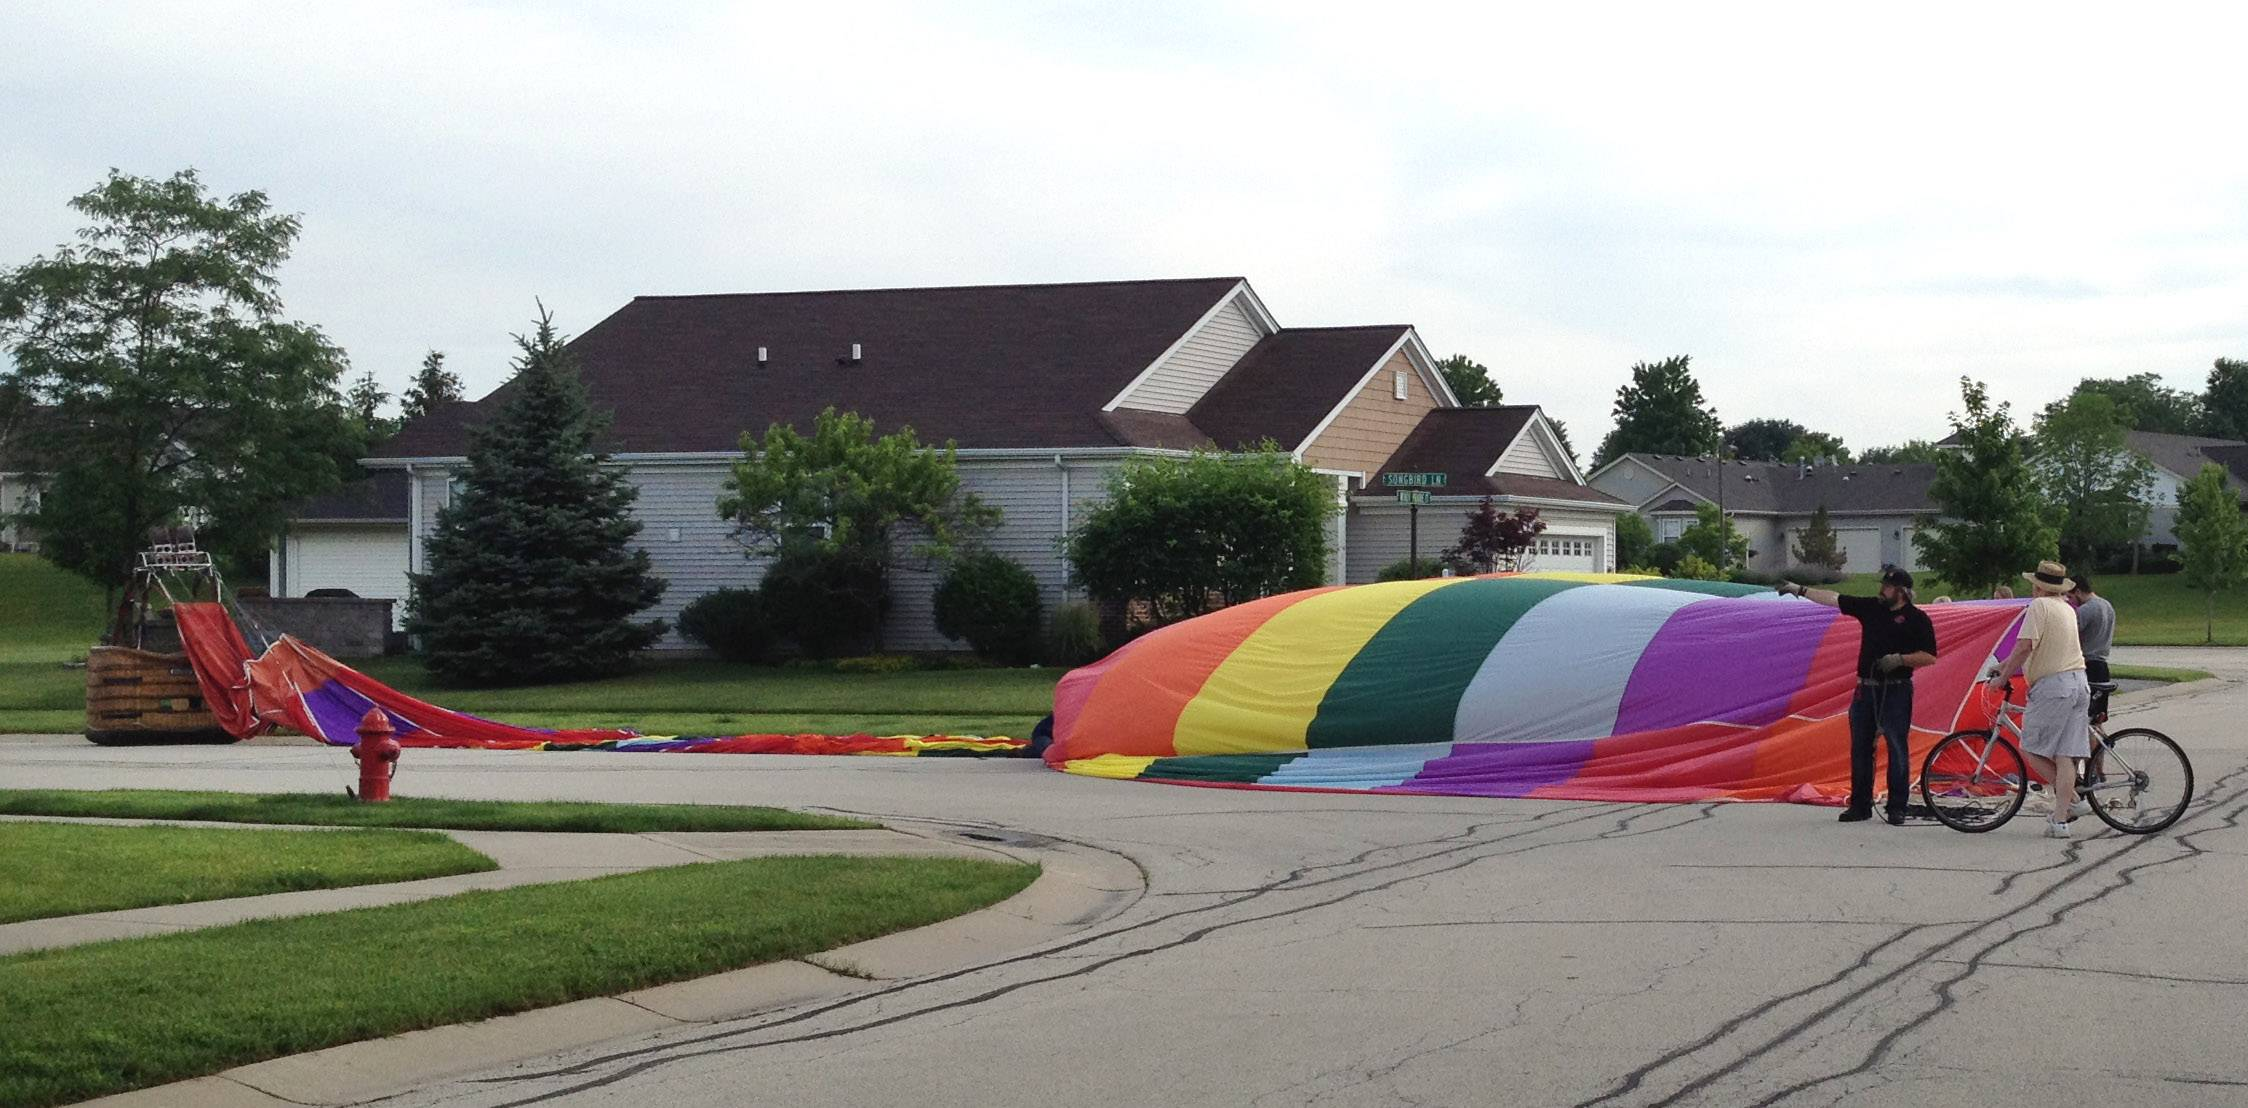 The pilot of a hot-air balloon that landed in the Sun City neighborhood in Huntley early Tuesday might face penalties, the police chief said Wednesday.